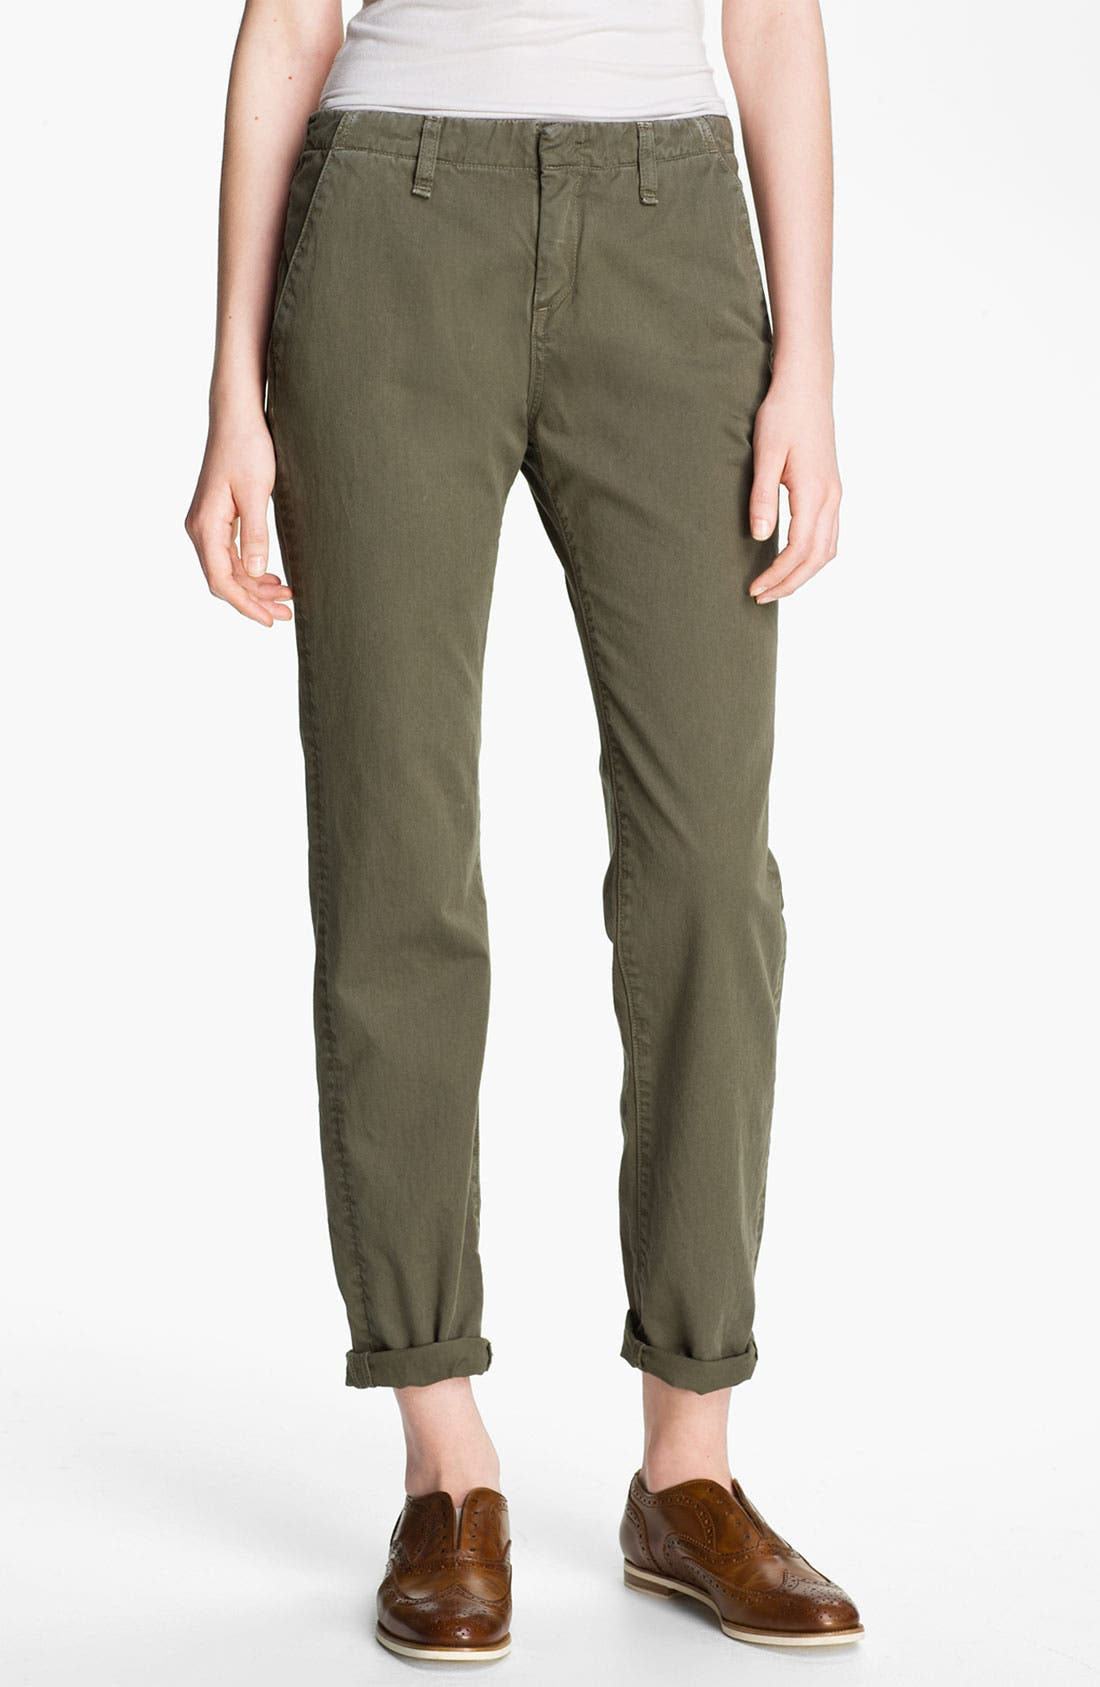 Main Image - rag & bone/JEAN 'Portobello' Twill Pants